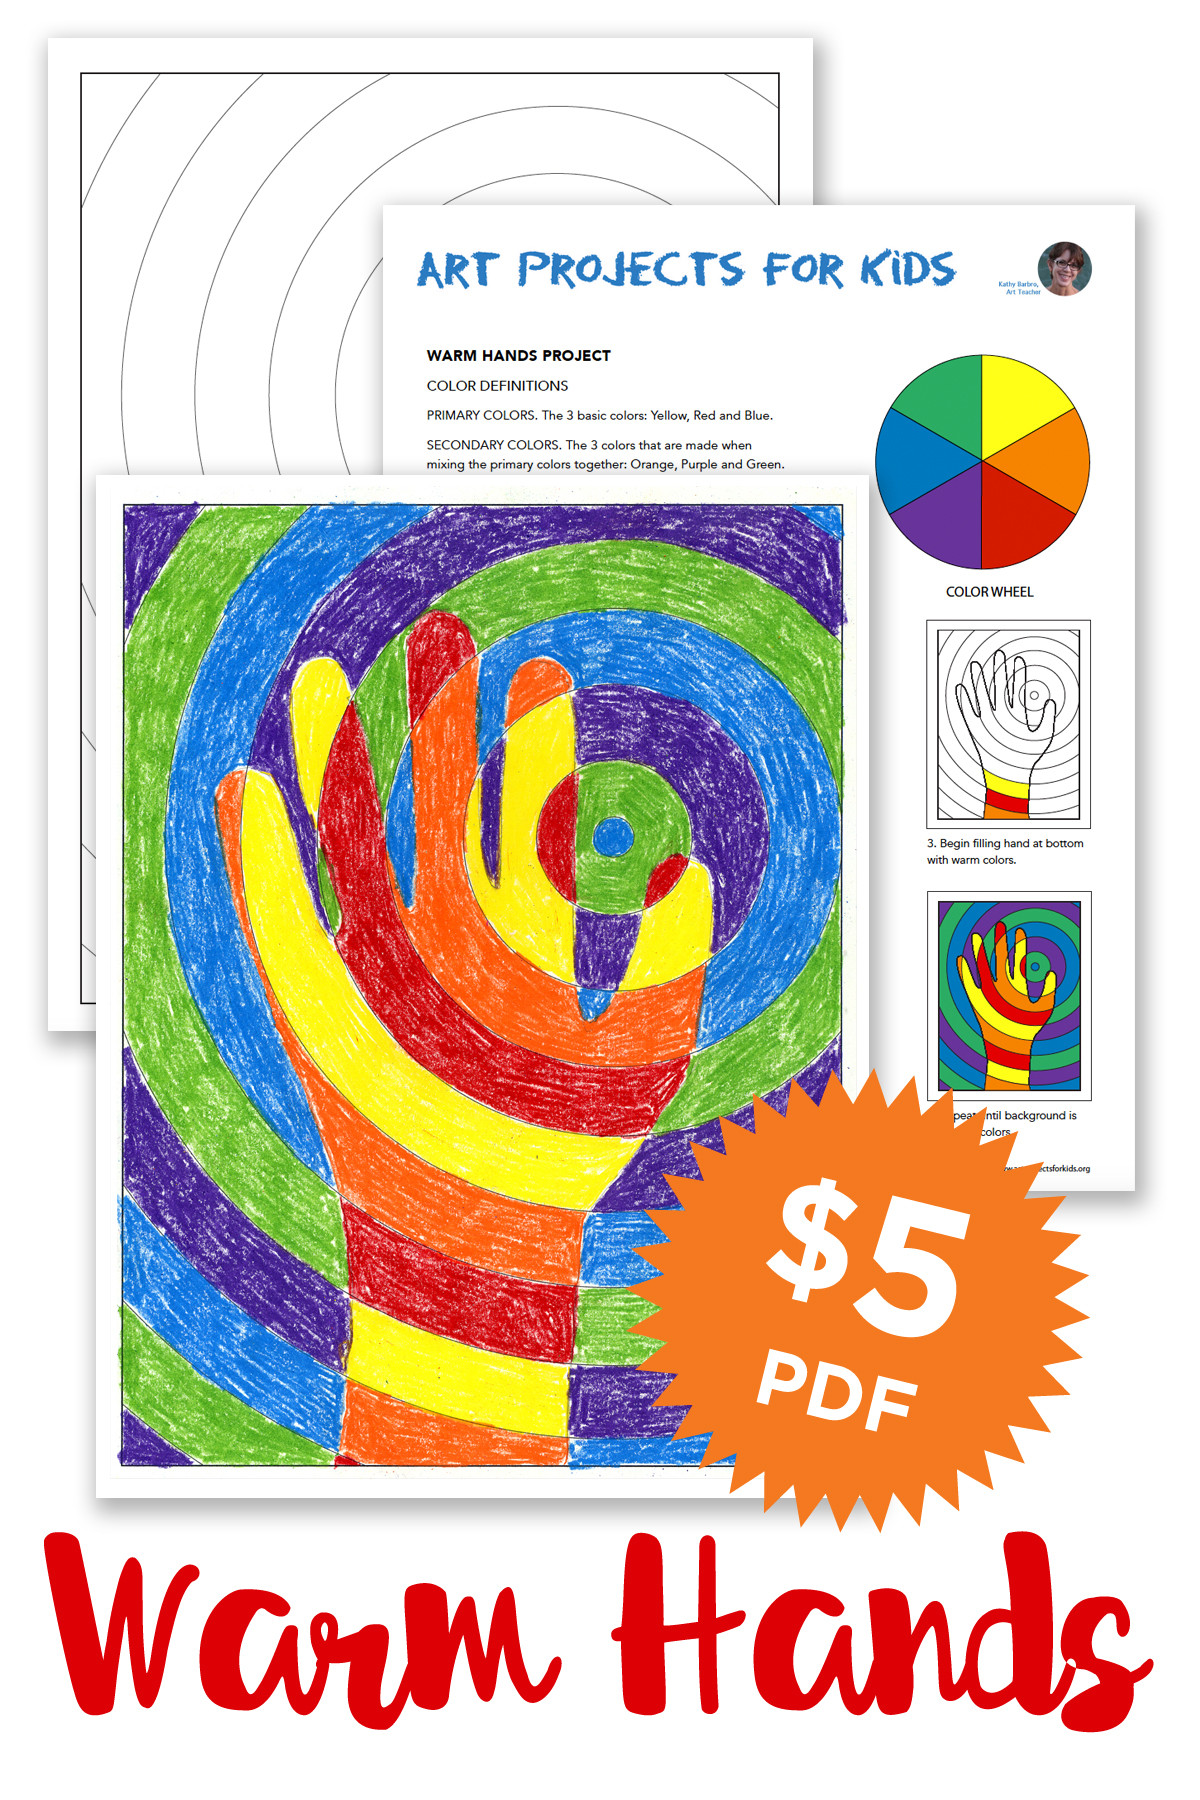 Best ideas about Projects For Kids . Save or Pin Warm Hands Art Projects for Kids Now.